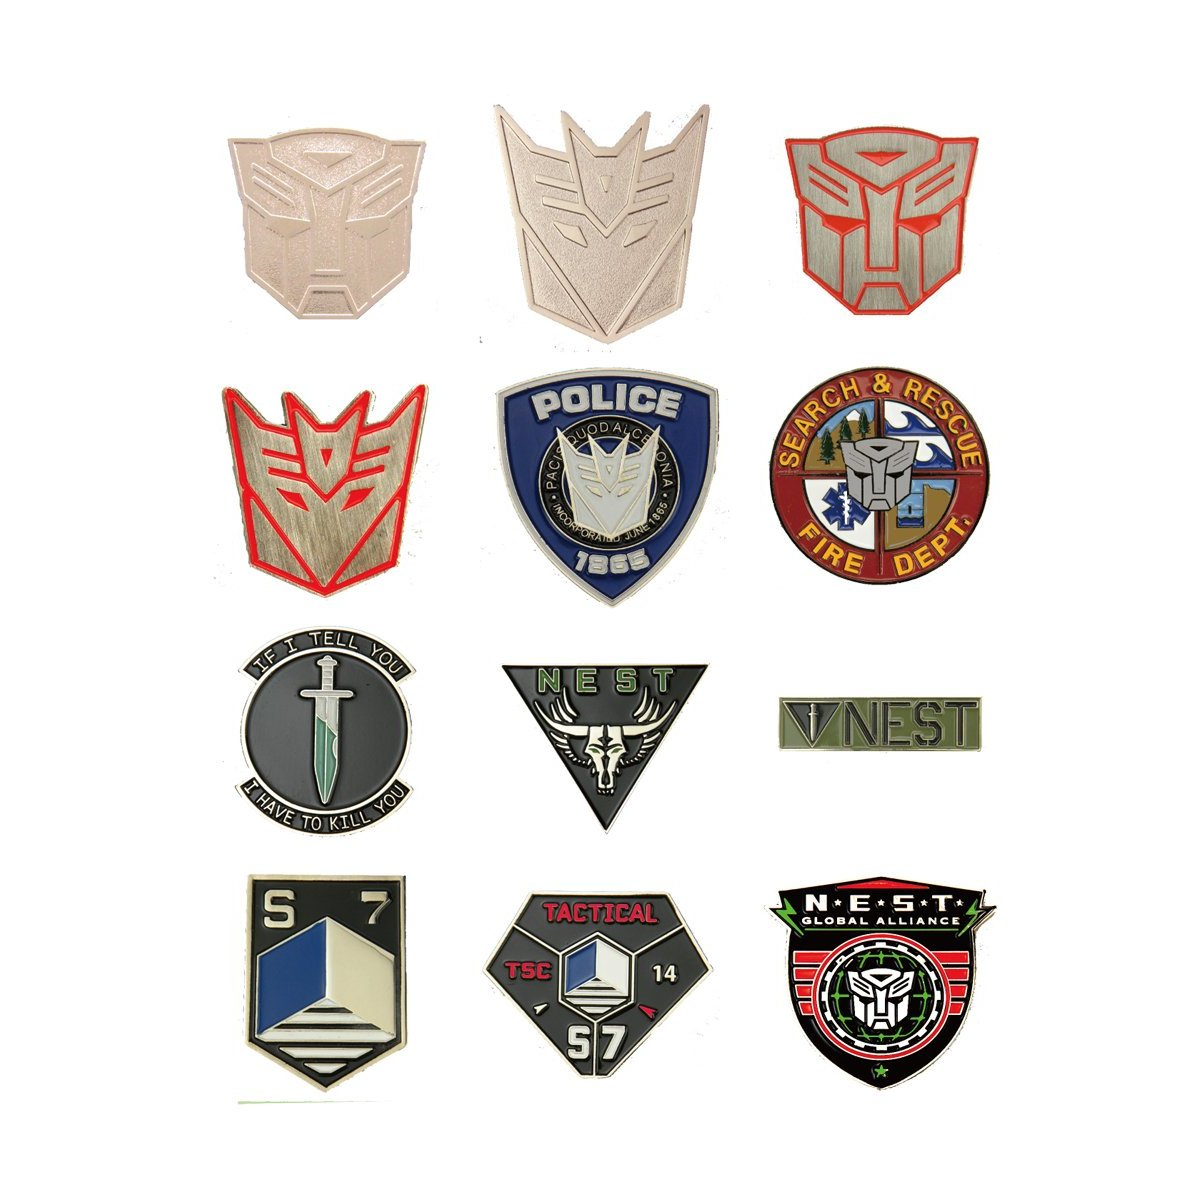 Transformers Pins Collection Revealed Transformers News